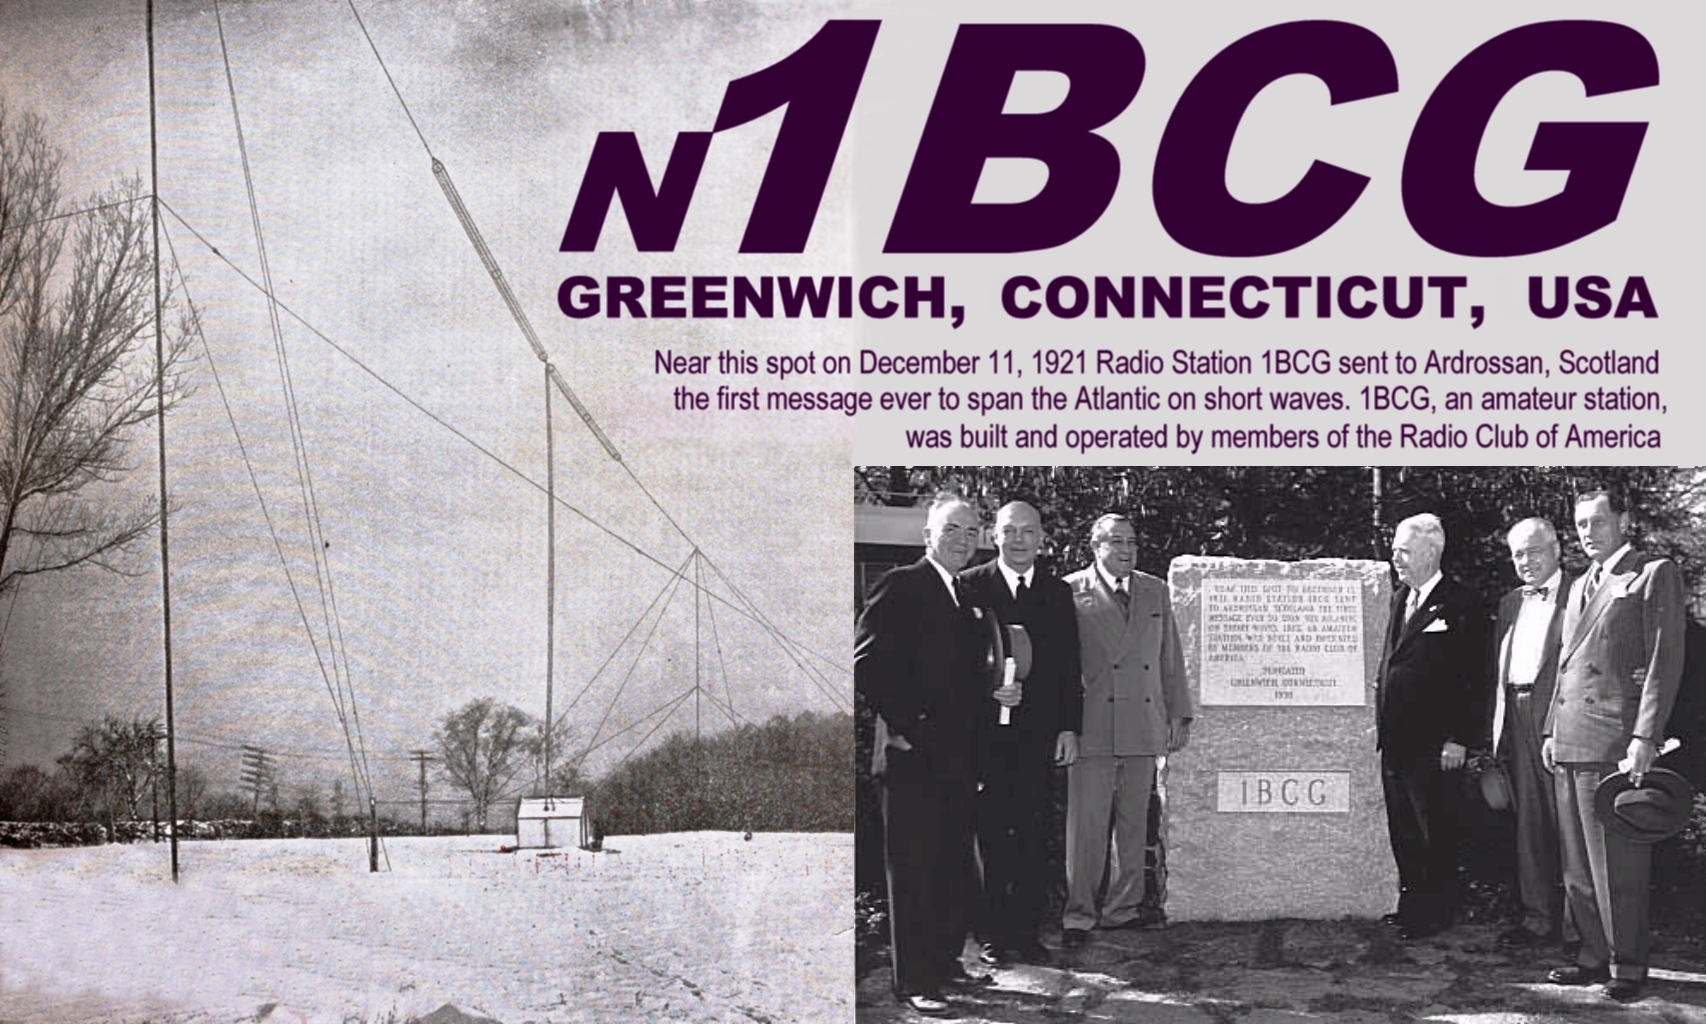 The special event will use N1BCG, the call sign of Clark Burgard of  Greenwich,